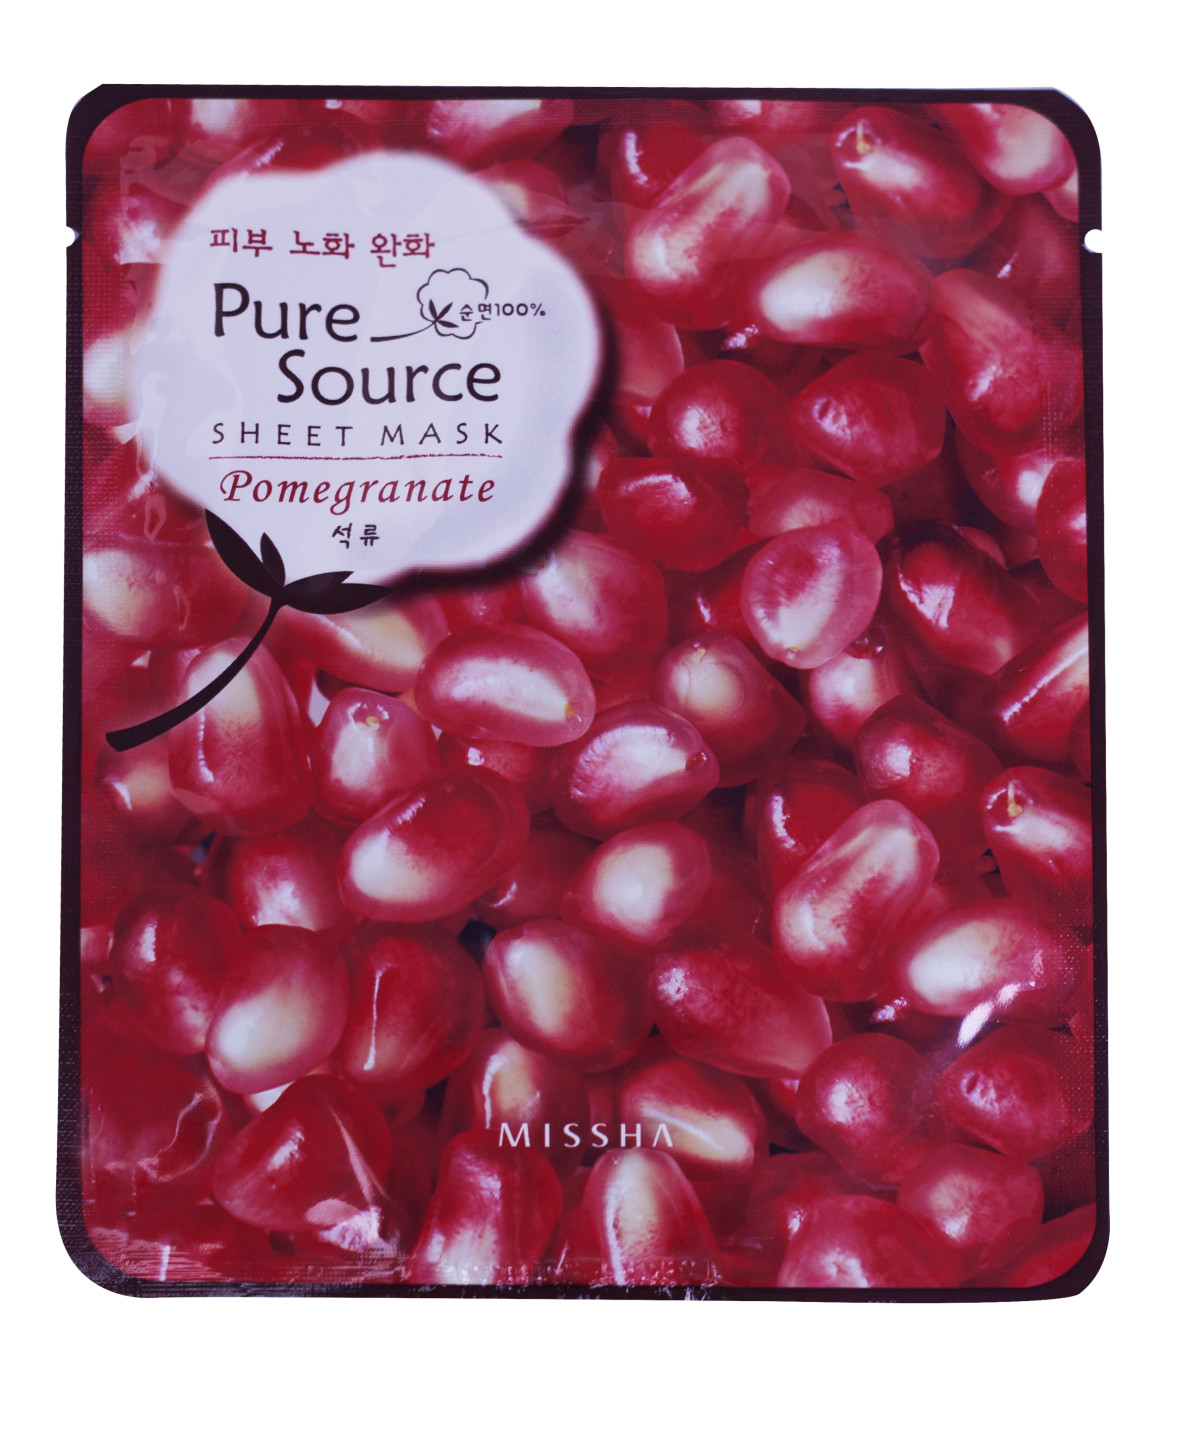 Pomegranate Pure Soure Sheet Mask by Missha